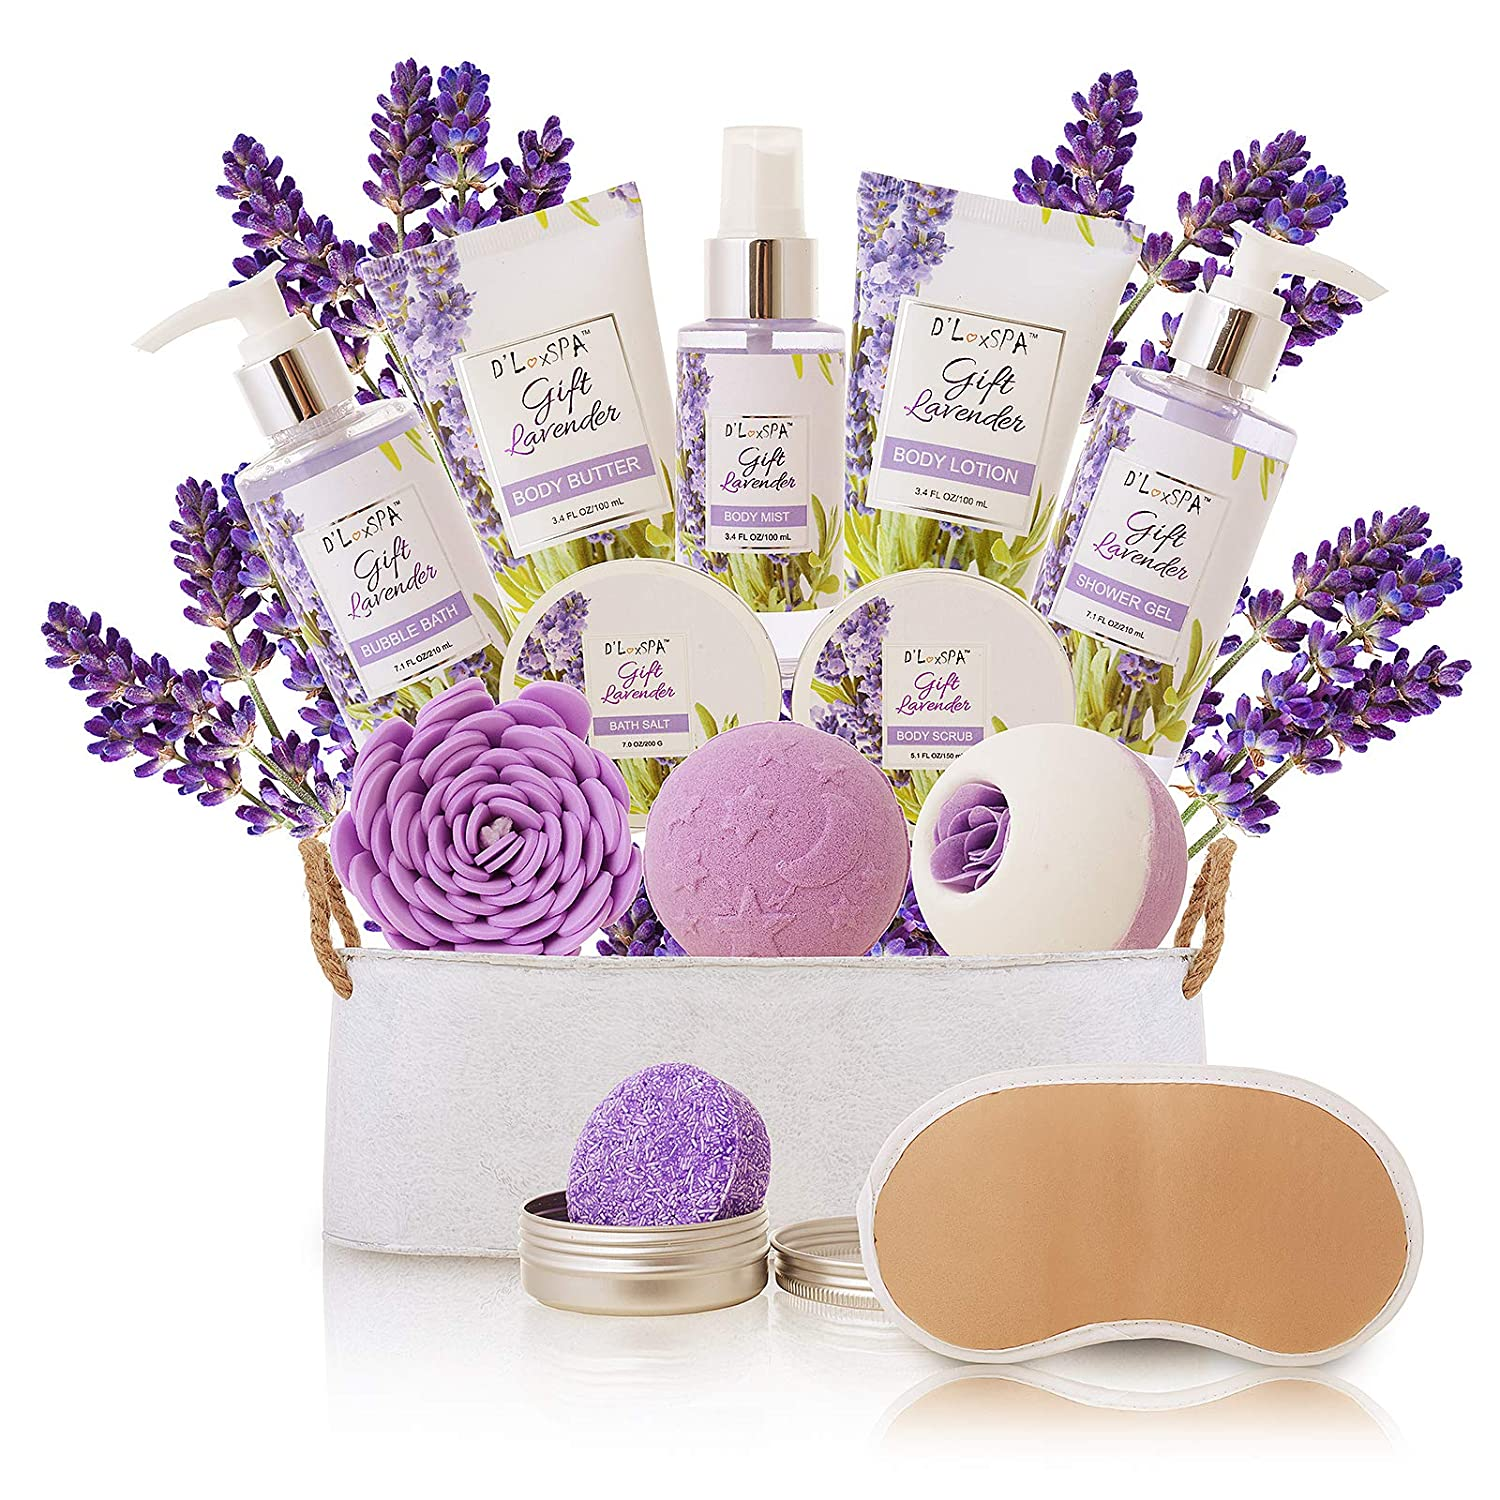 Spa Gift Baskets for Women Lavender Bath and Body At Home Spa Kit Mothers Day Spa Gifts Ideas - Luxury 15pcs with Bath Bombs, Shampoo Bar, Eye Mask, Shower Gel, Bubble Bath, Salts, Body Scrub Lotion: Beauty